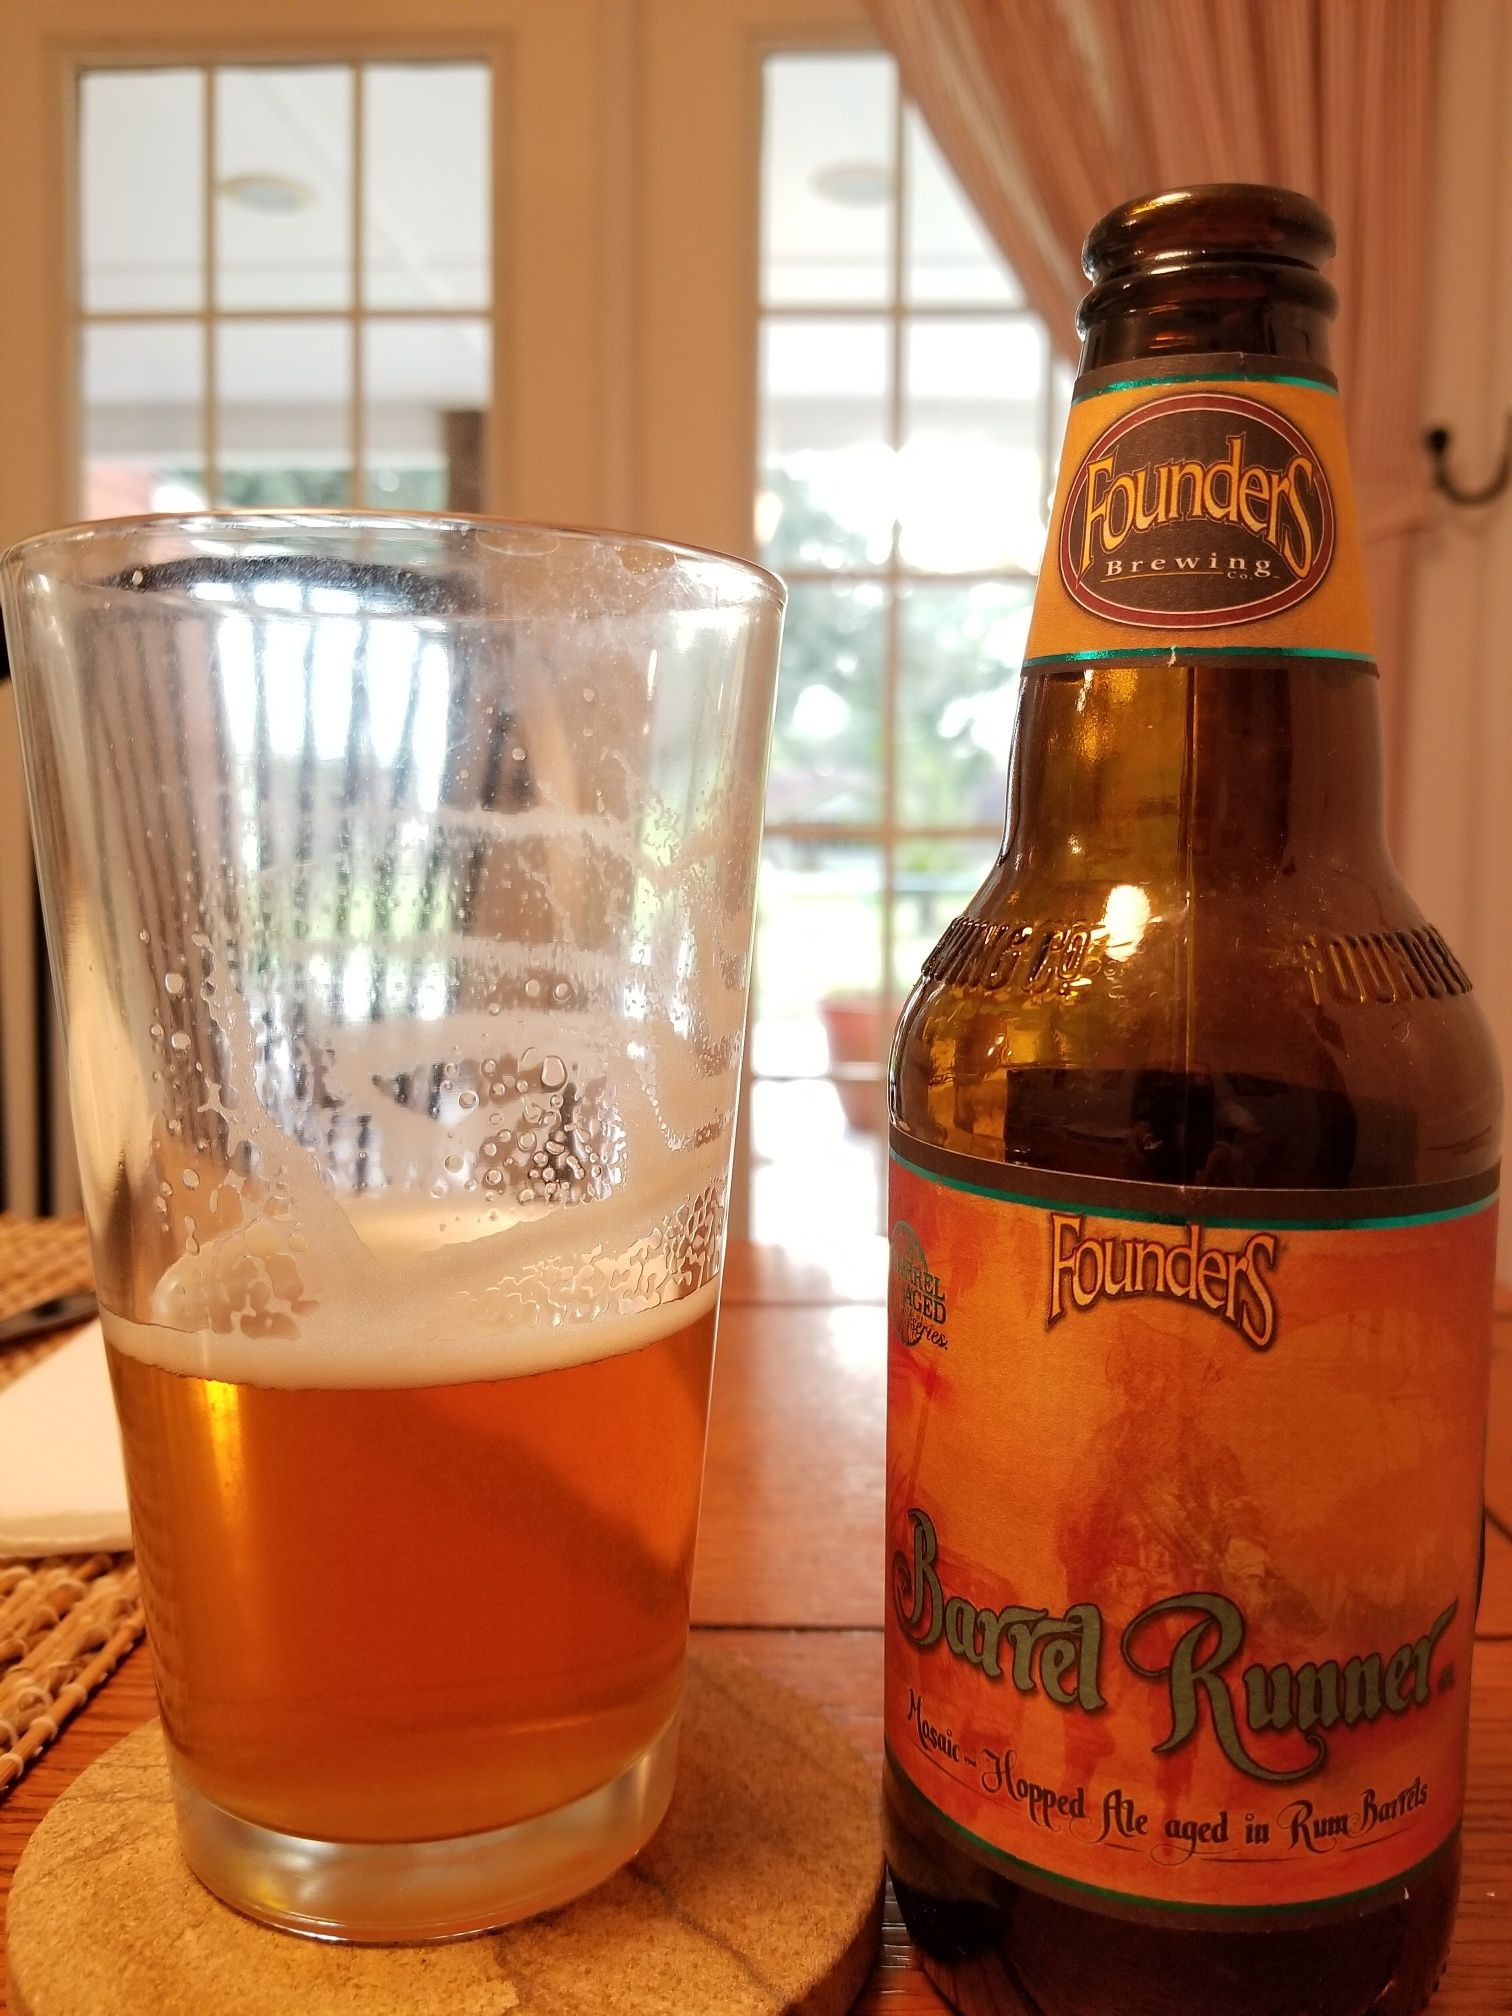 Pin by Warren Percell on Brews in 2020 Founders brewing